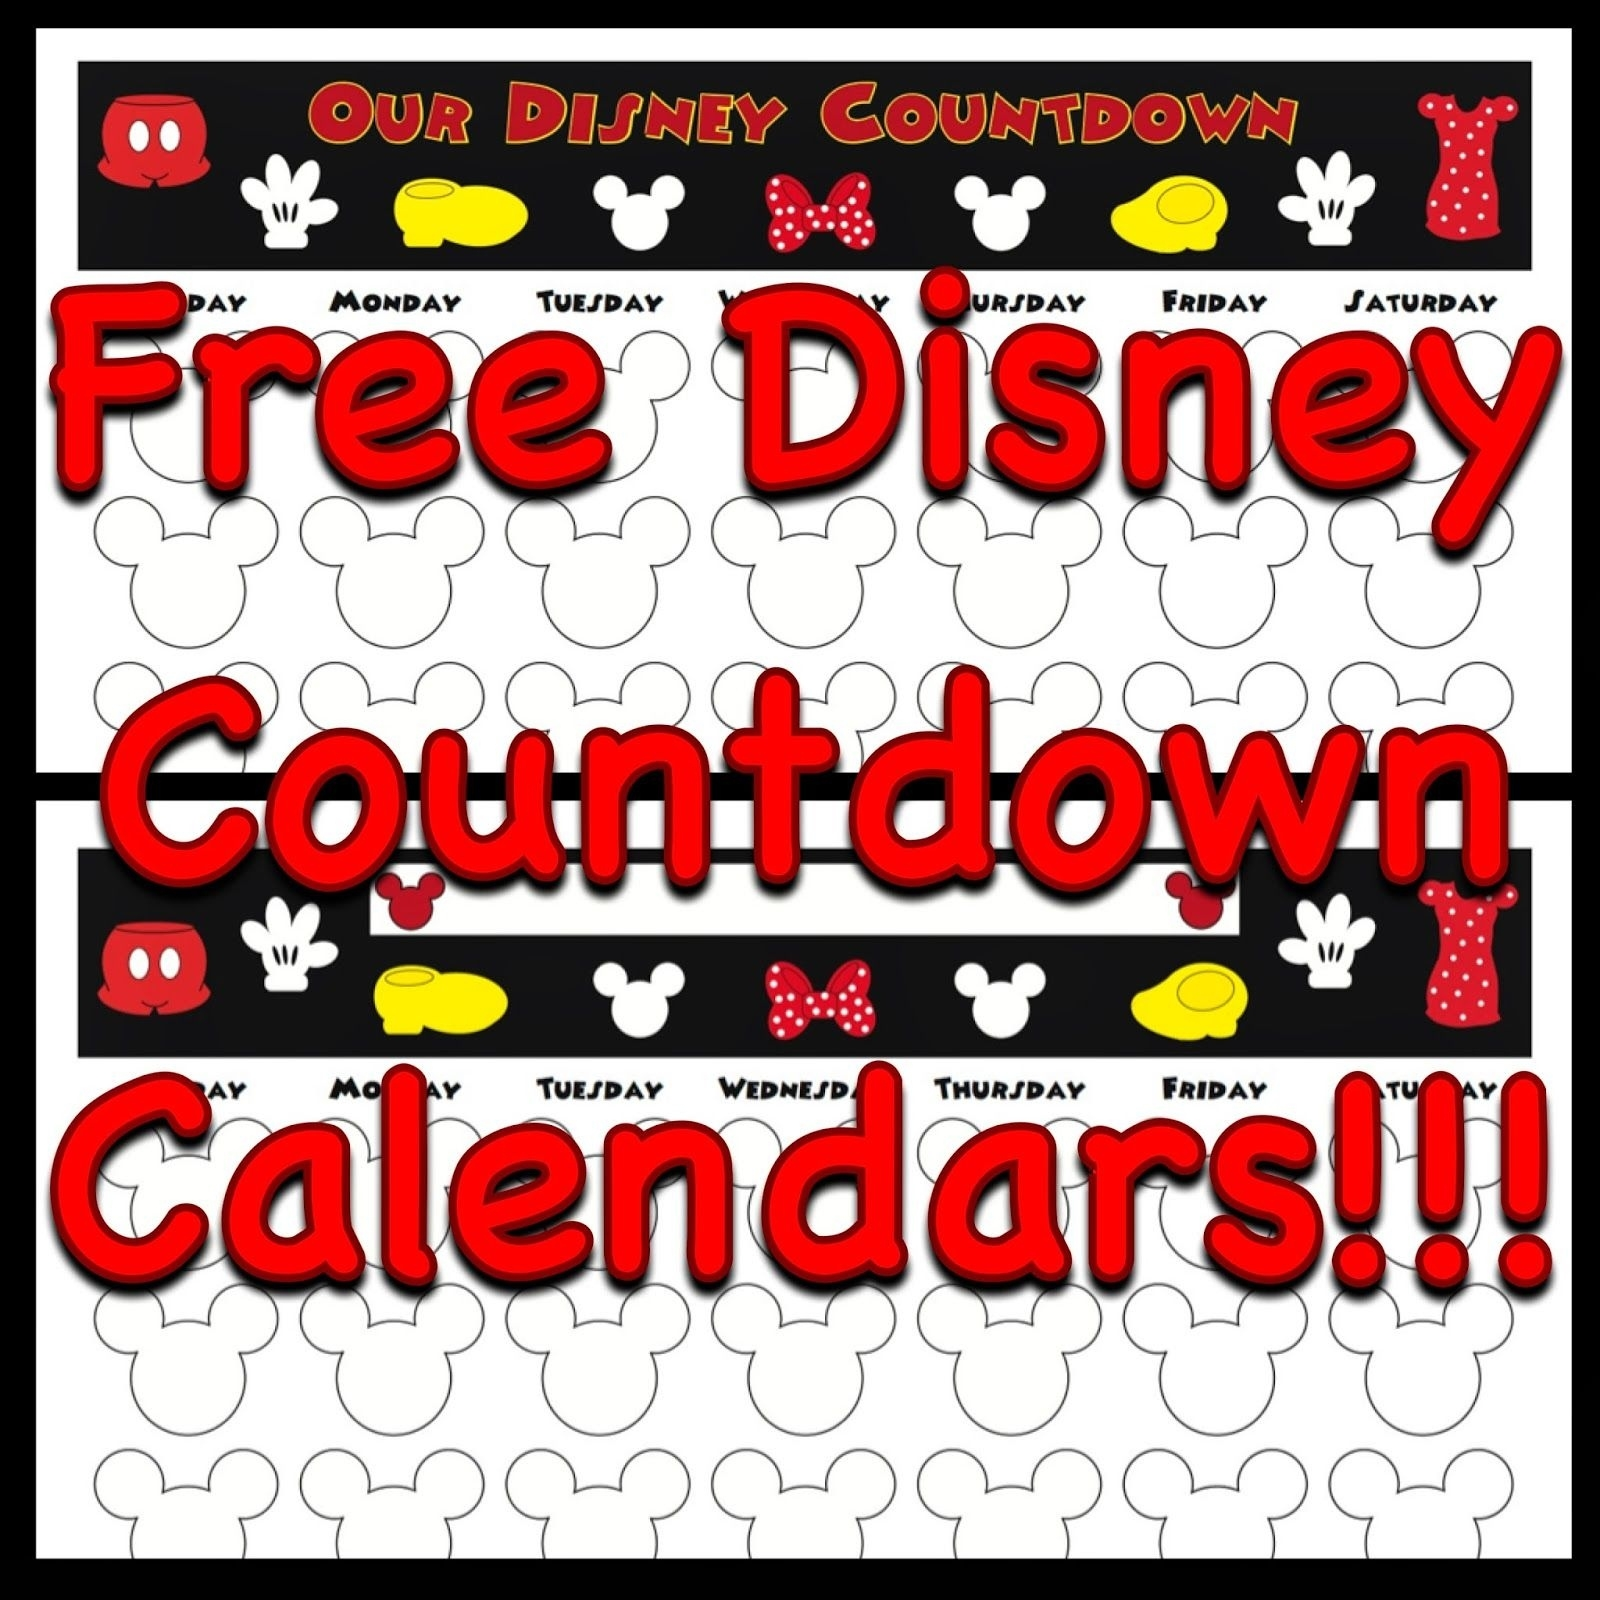 Free, Printable Countdown Calendars To Use For Your Next Disney Trip Tear Off Countdown Calendar Uk